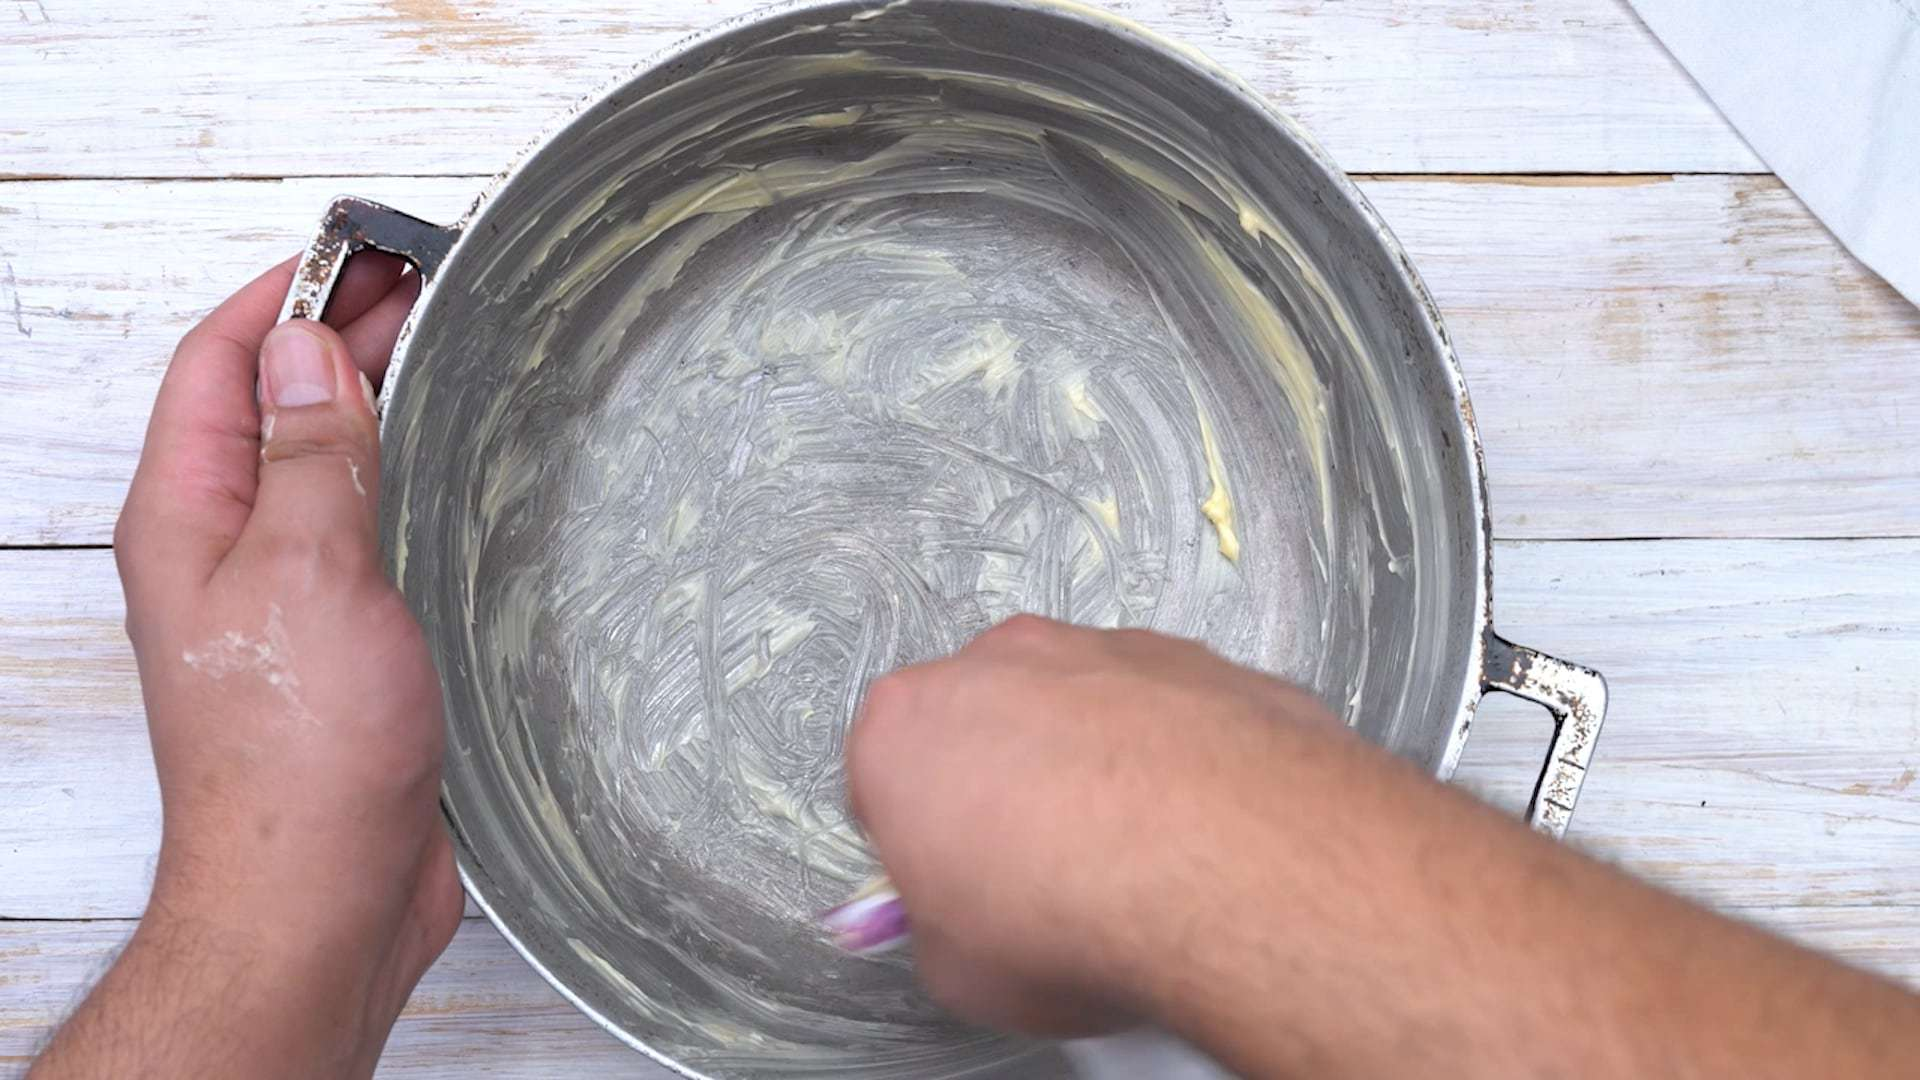 Greasing mold